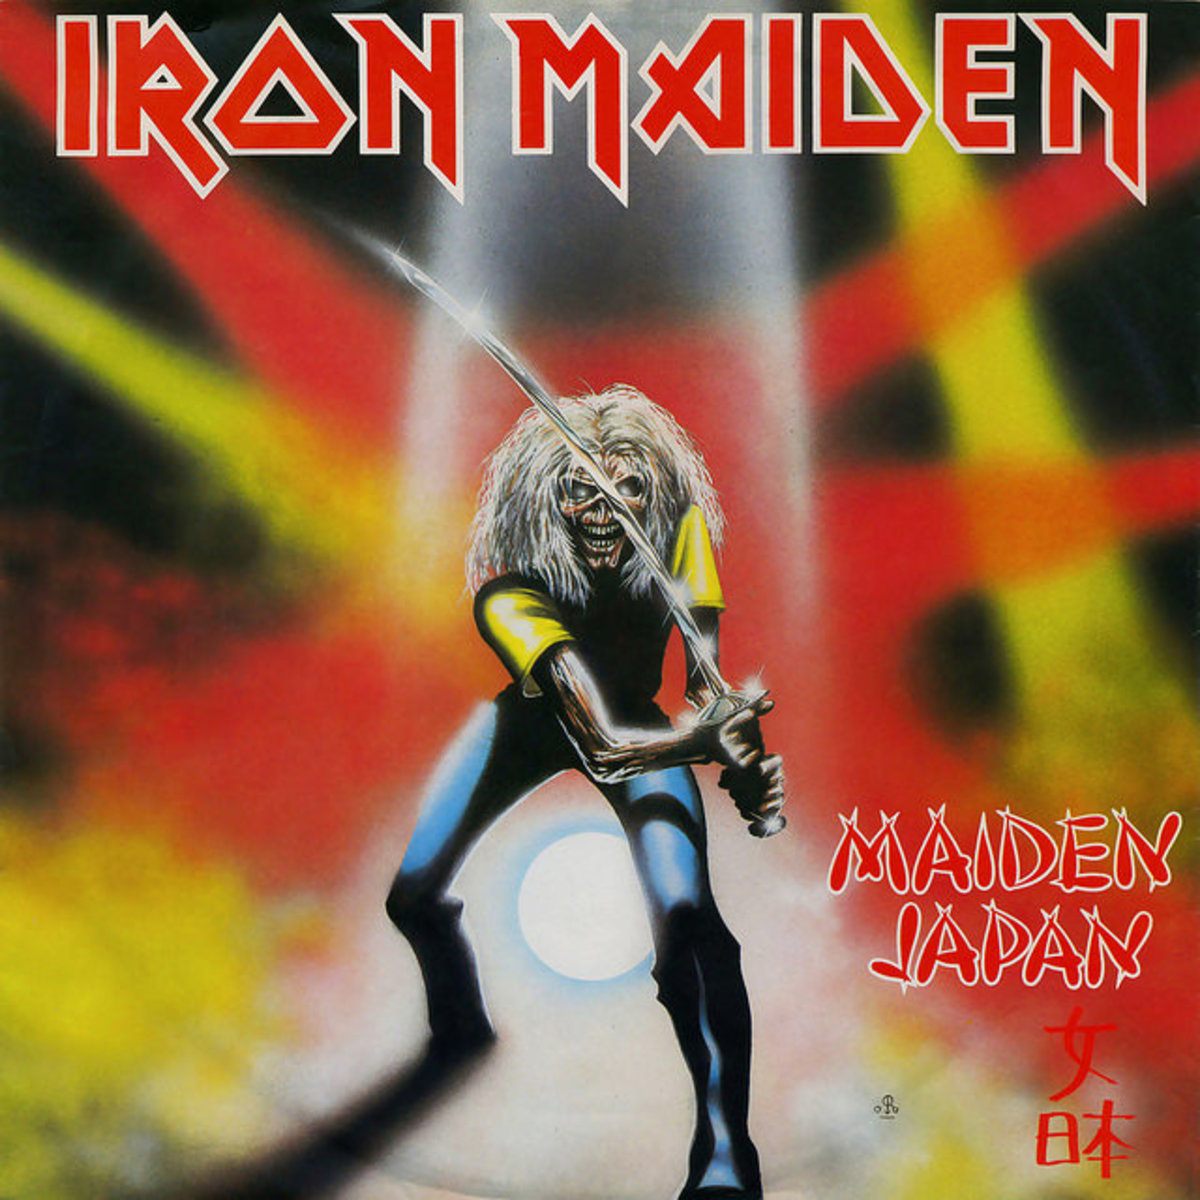 "Iron Maiden ""Maiden Japan"" EMI 12EMI 5219 12"" EP Vinyl Record UK Pressing Censored Cover (1981) EP Cover Art by Derek Riggs"